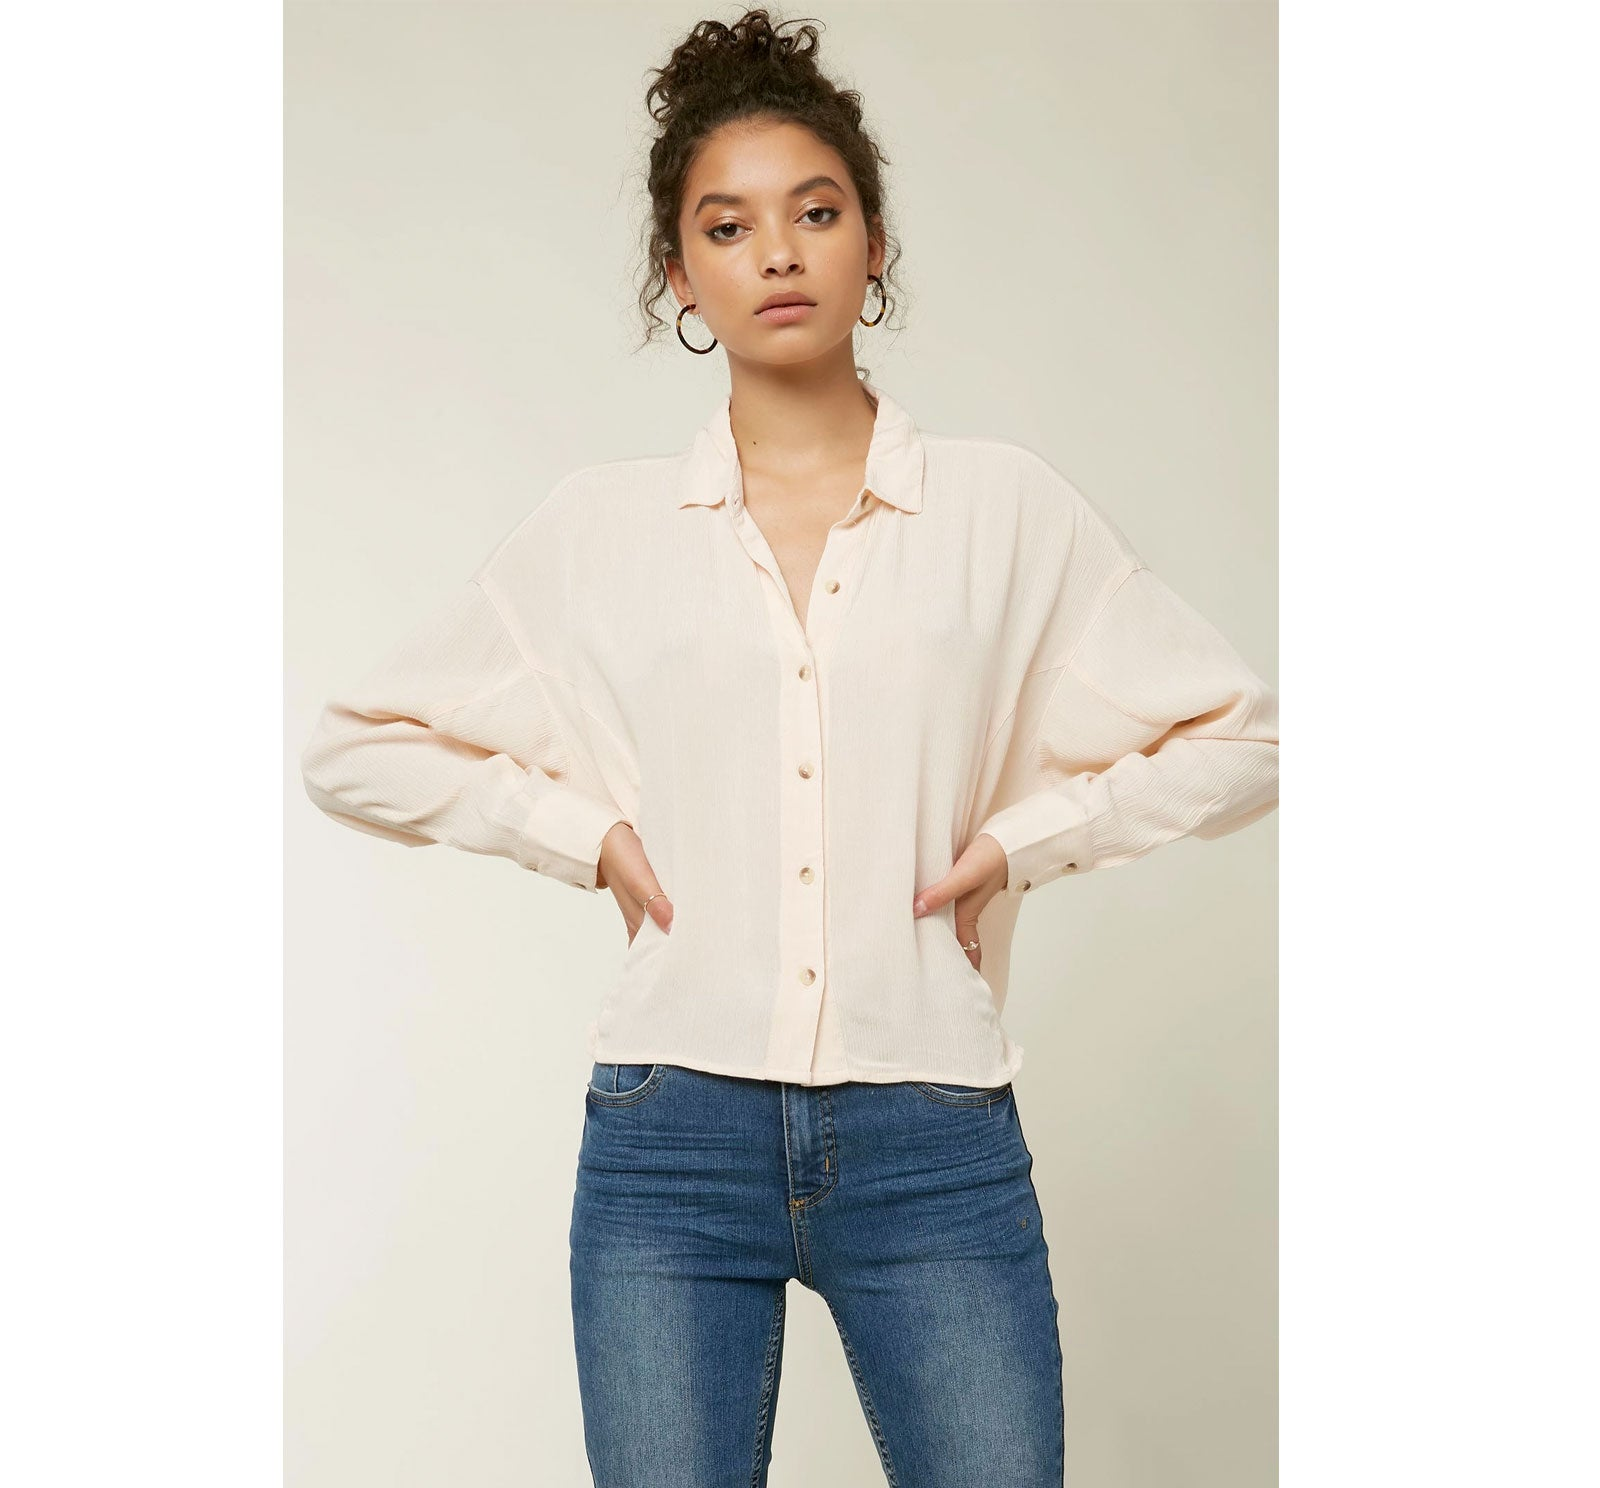 O'Neill Braxton Button Up Women's Top